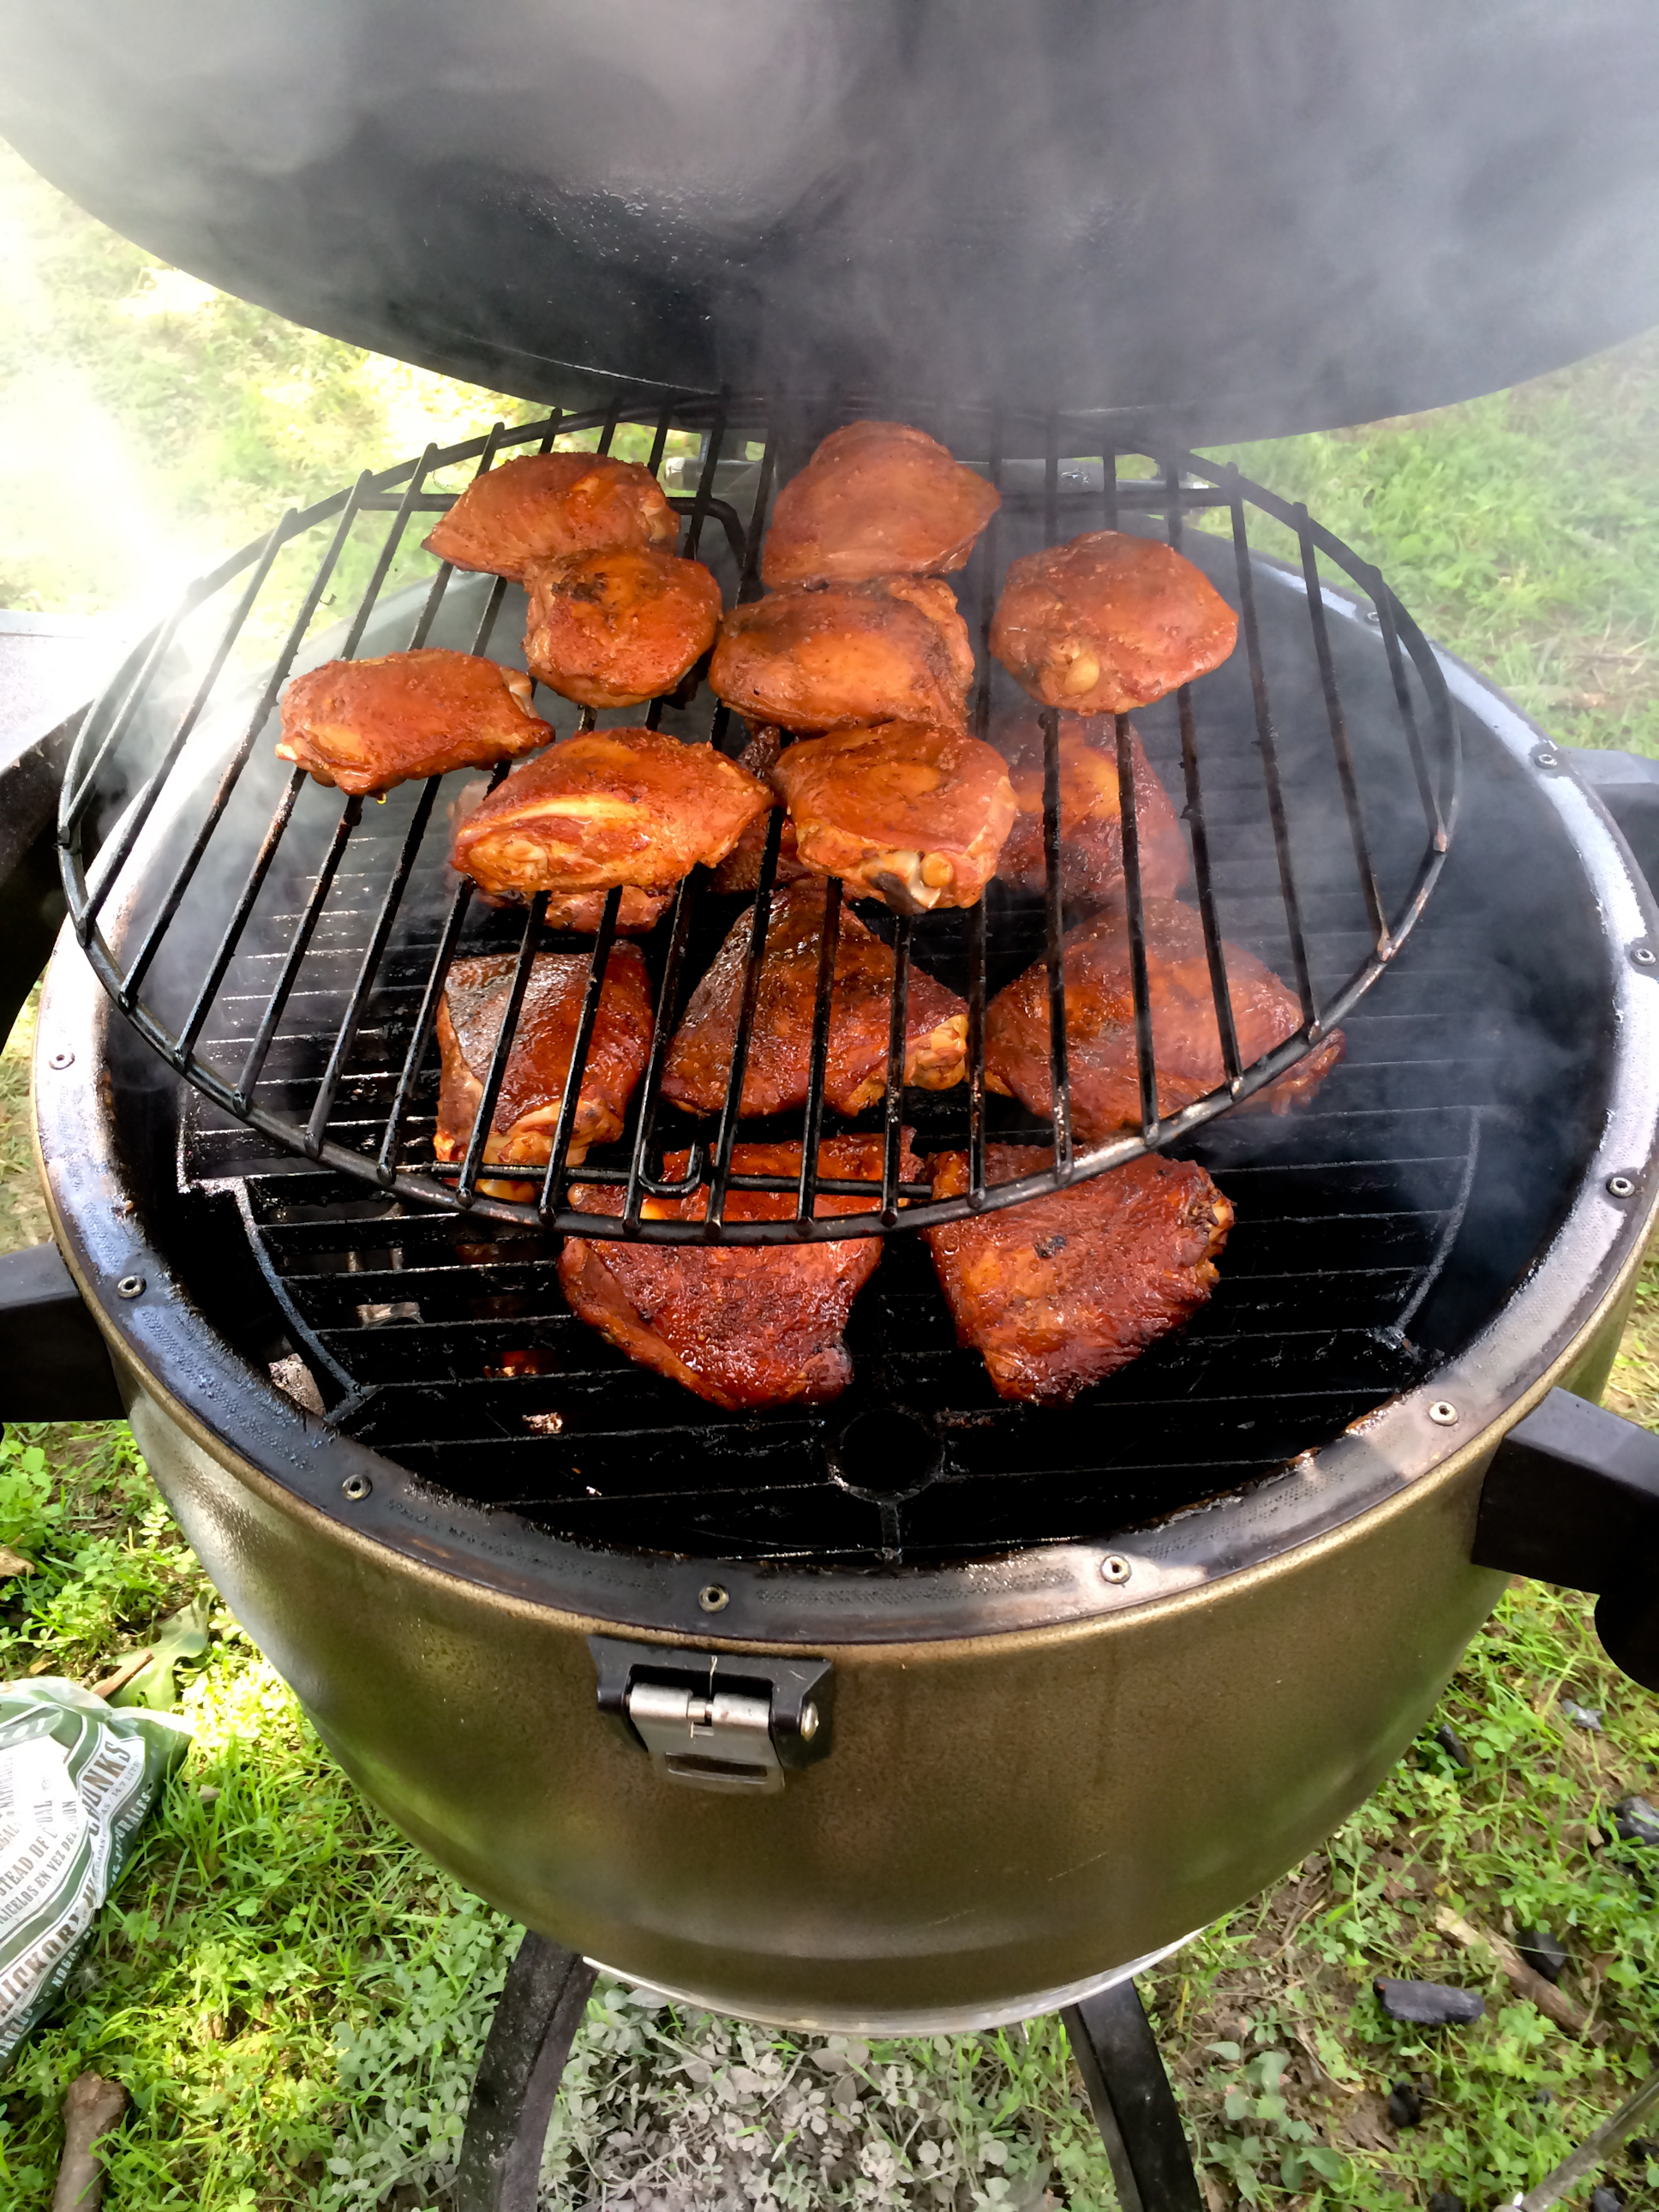 Chicken Thighs on the Broil King Keg